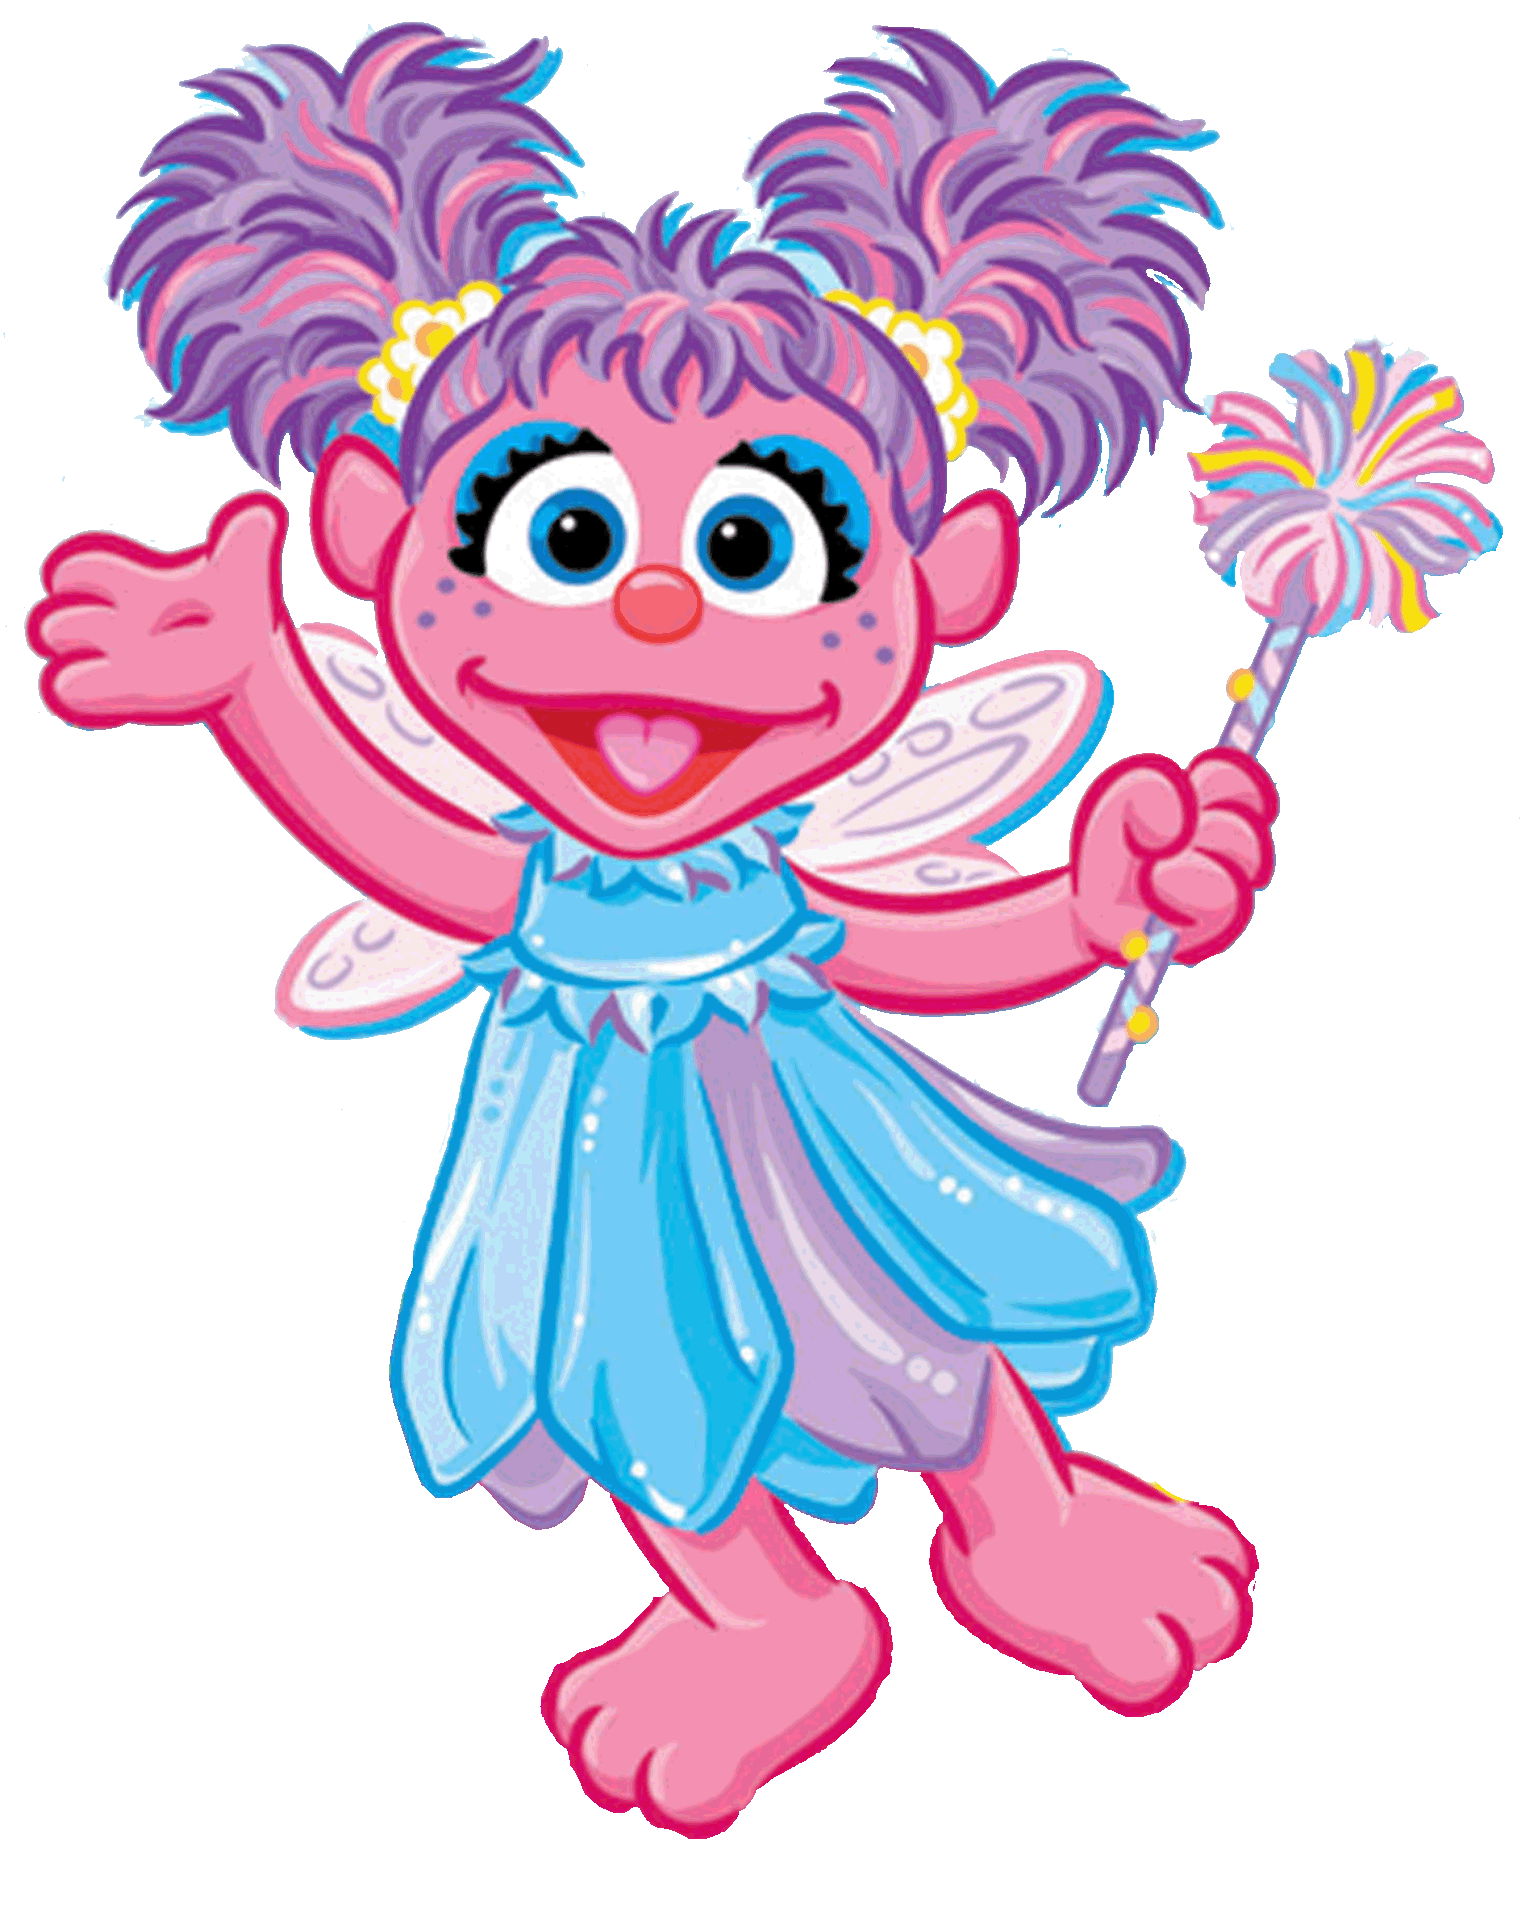 Sesame street light pole png. Pin by crafty annabelle